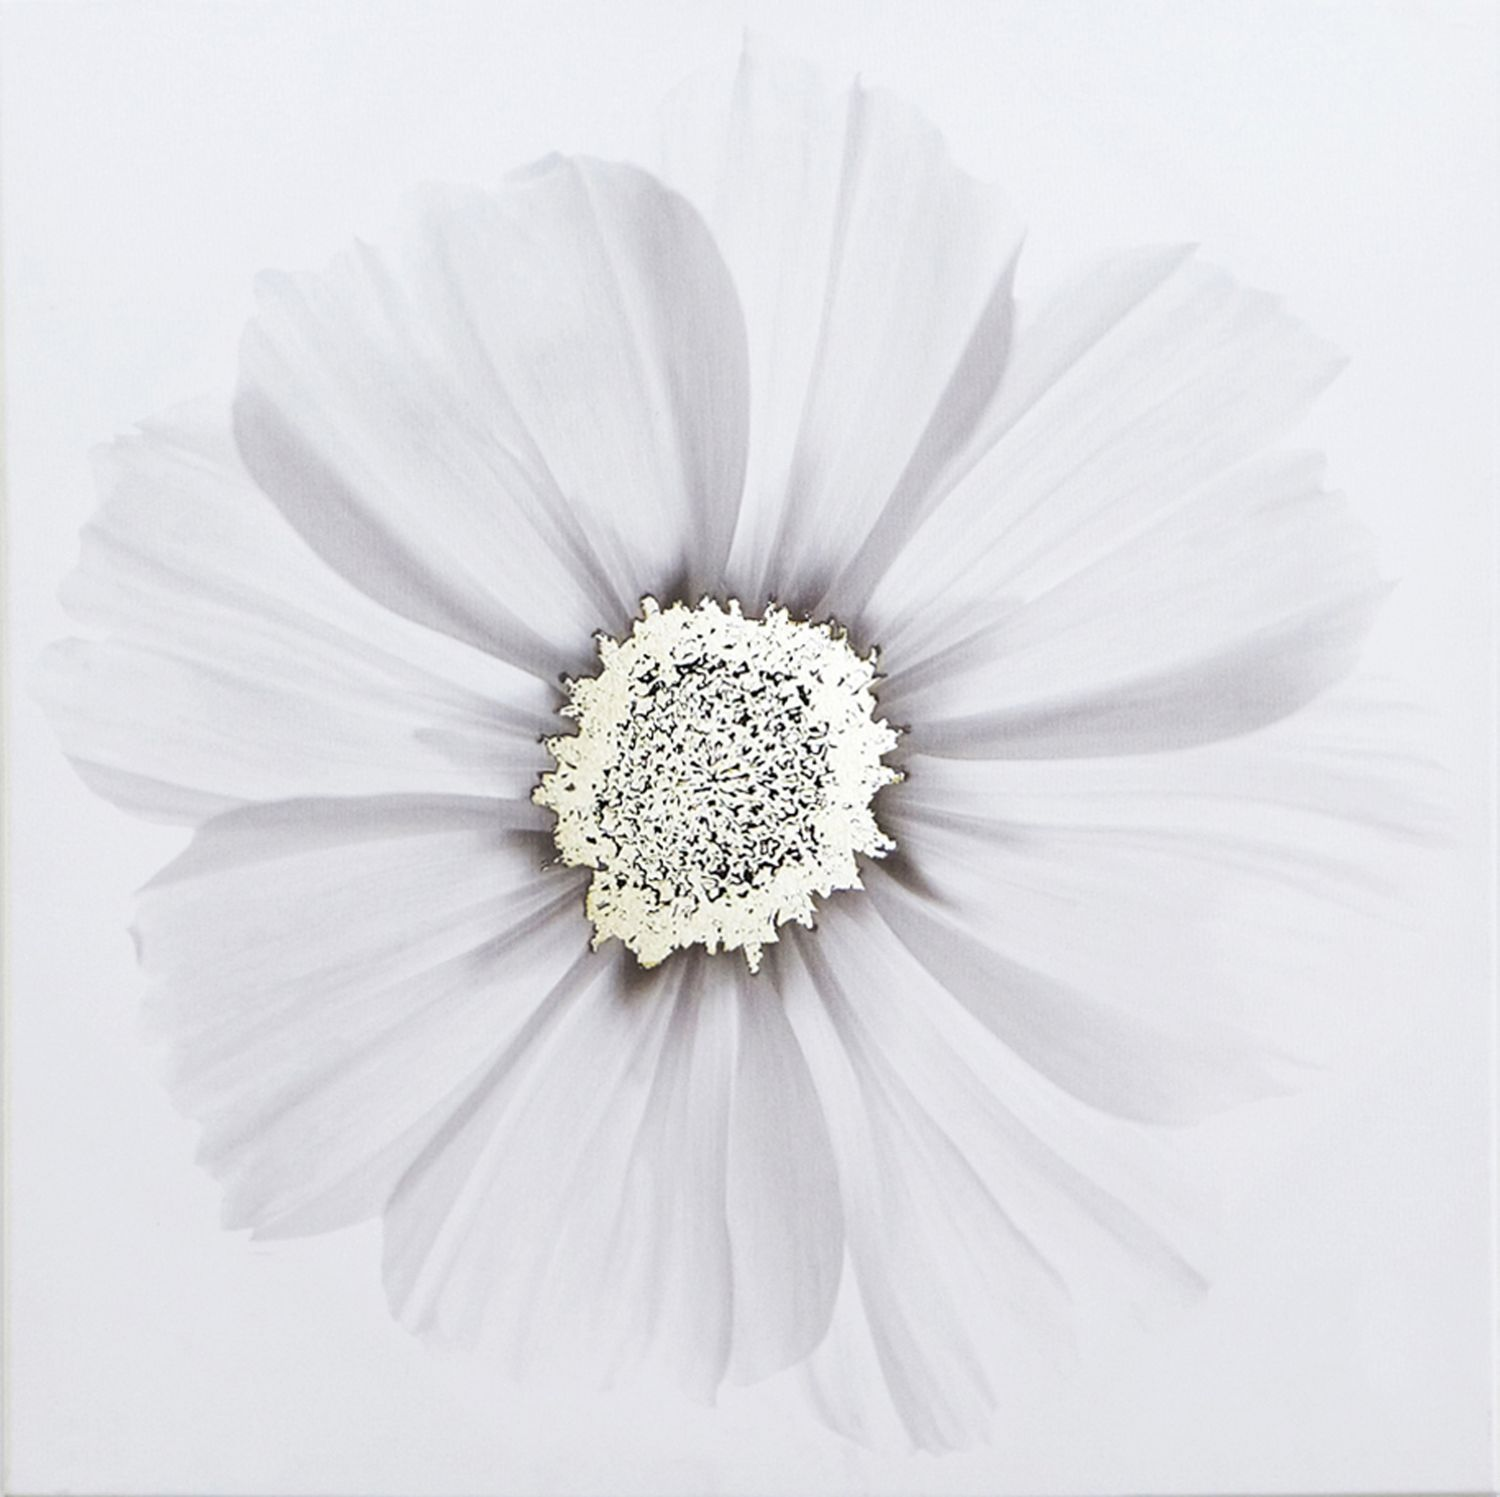 Metallic x ray floral wall art